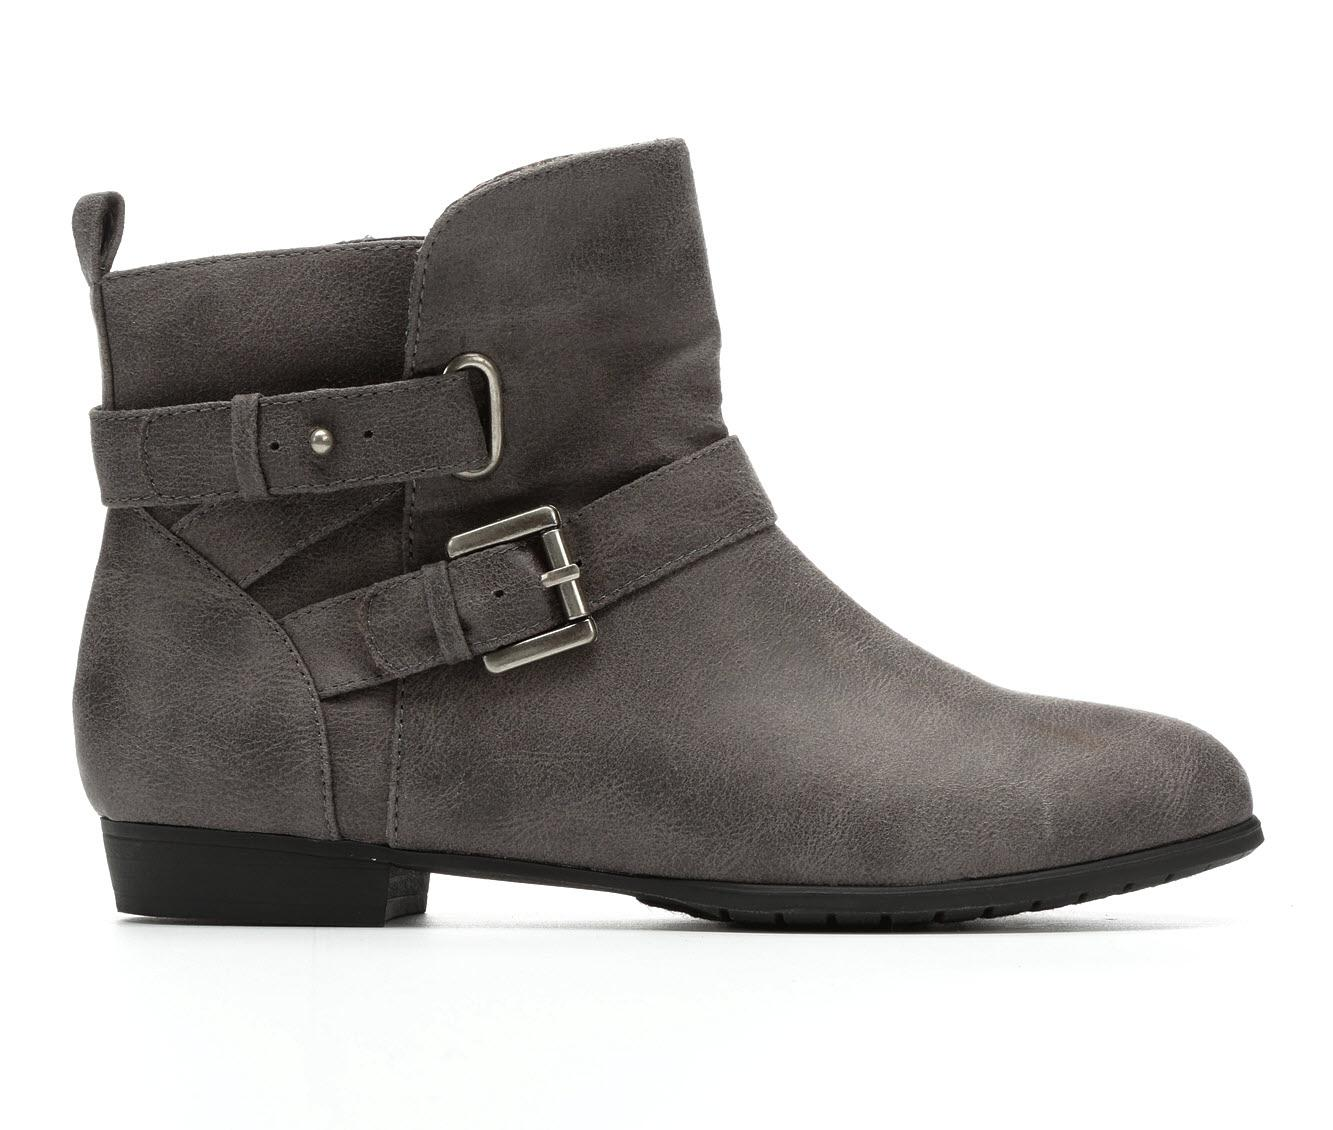 rampage shoes bidelia booties KOHJEFB